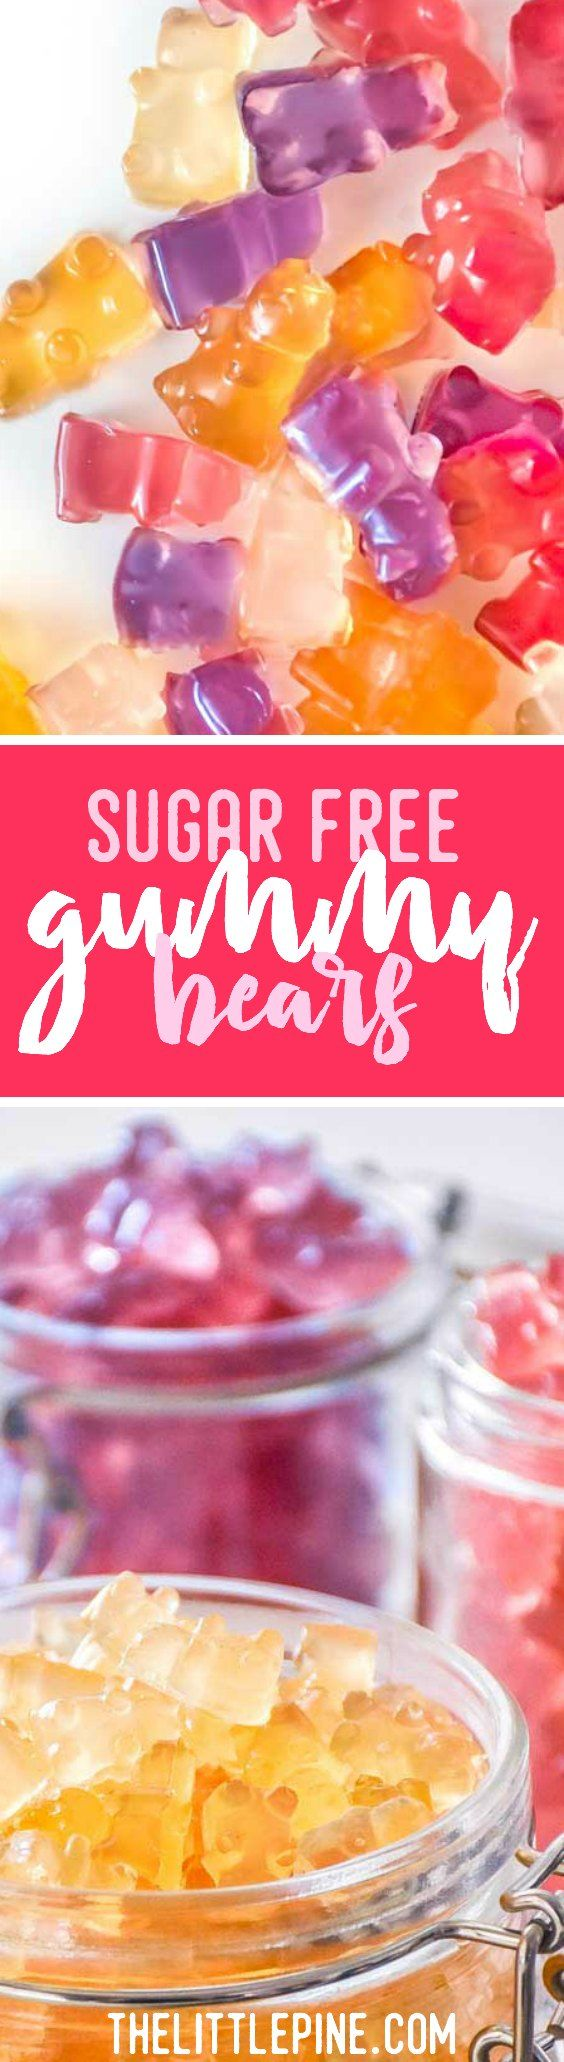 Delicious sugar free gummy bear recipe that's low carb, tummy friendly and sure to satisfy your sweet tooth! #lowcarb #keto #recipe #haribo #healthy #sweettreats via @https://www.pinterest.com/thelittlepine